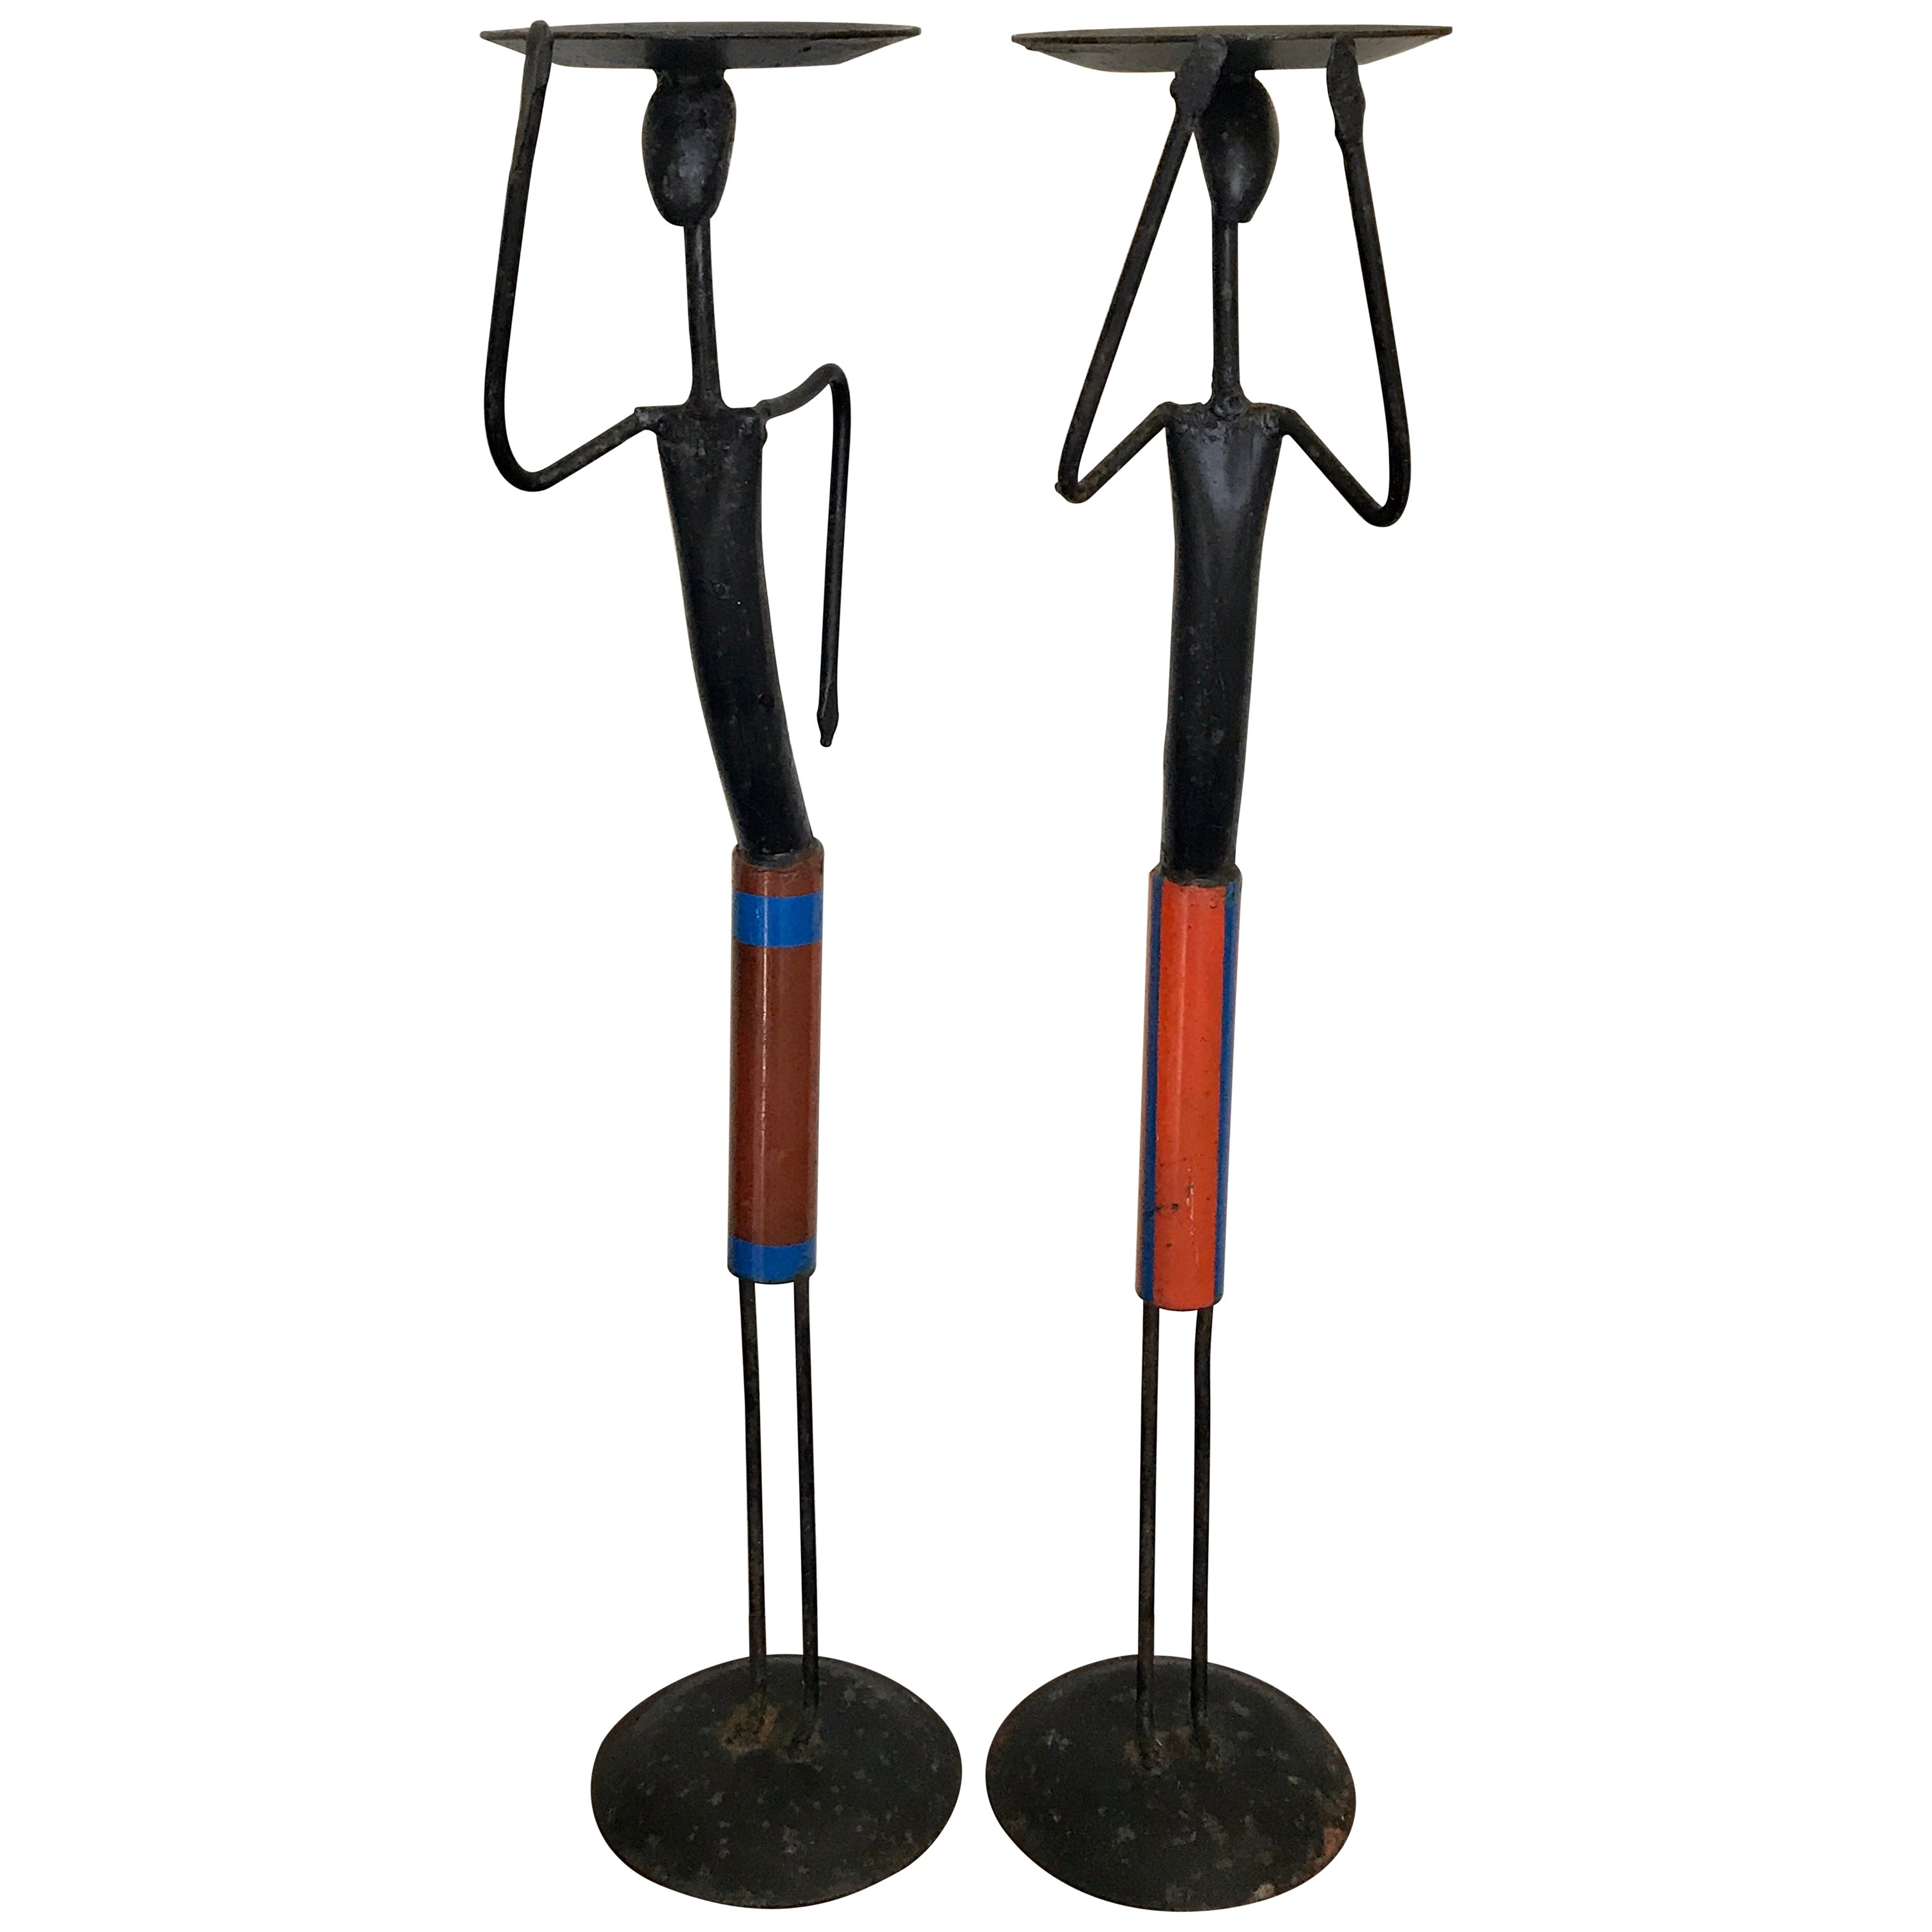 Pair of Mid-Century Modern Figurative Wrought Iron Candleholders, 1960s